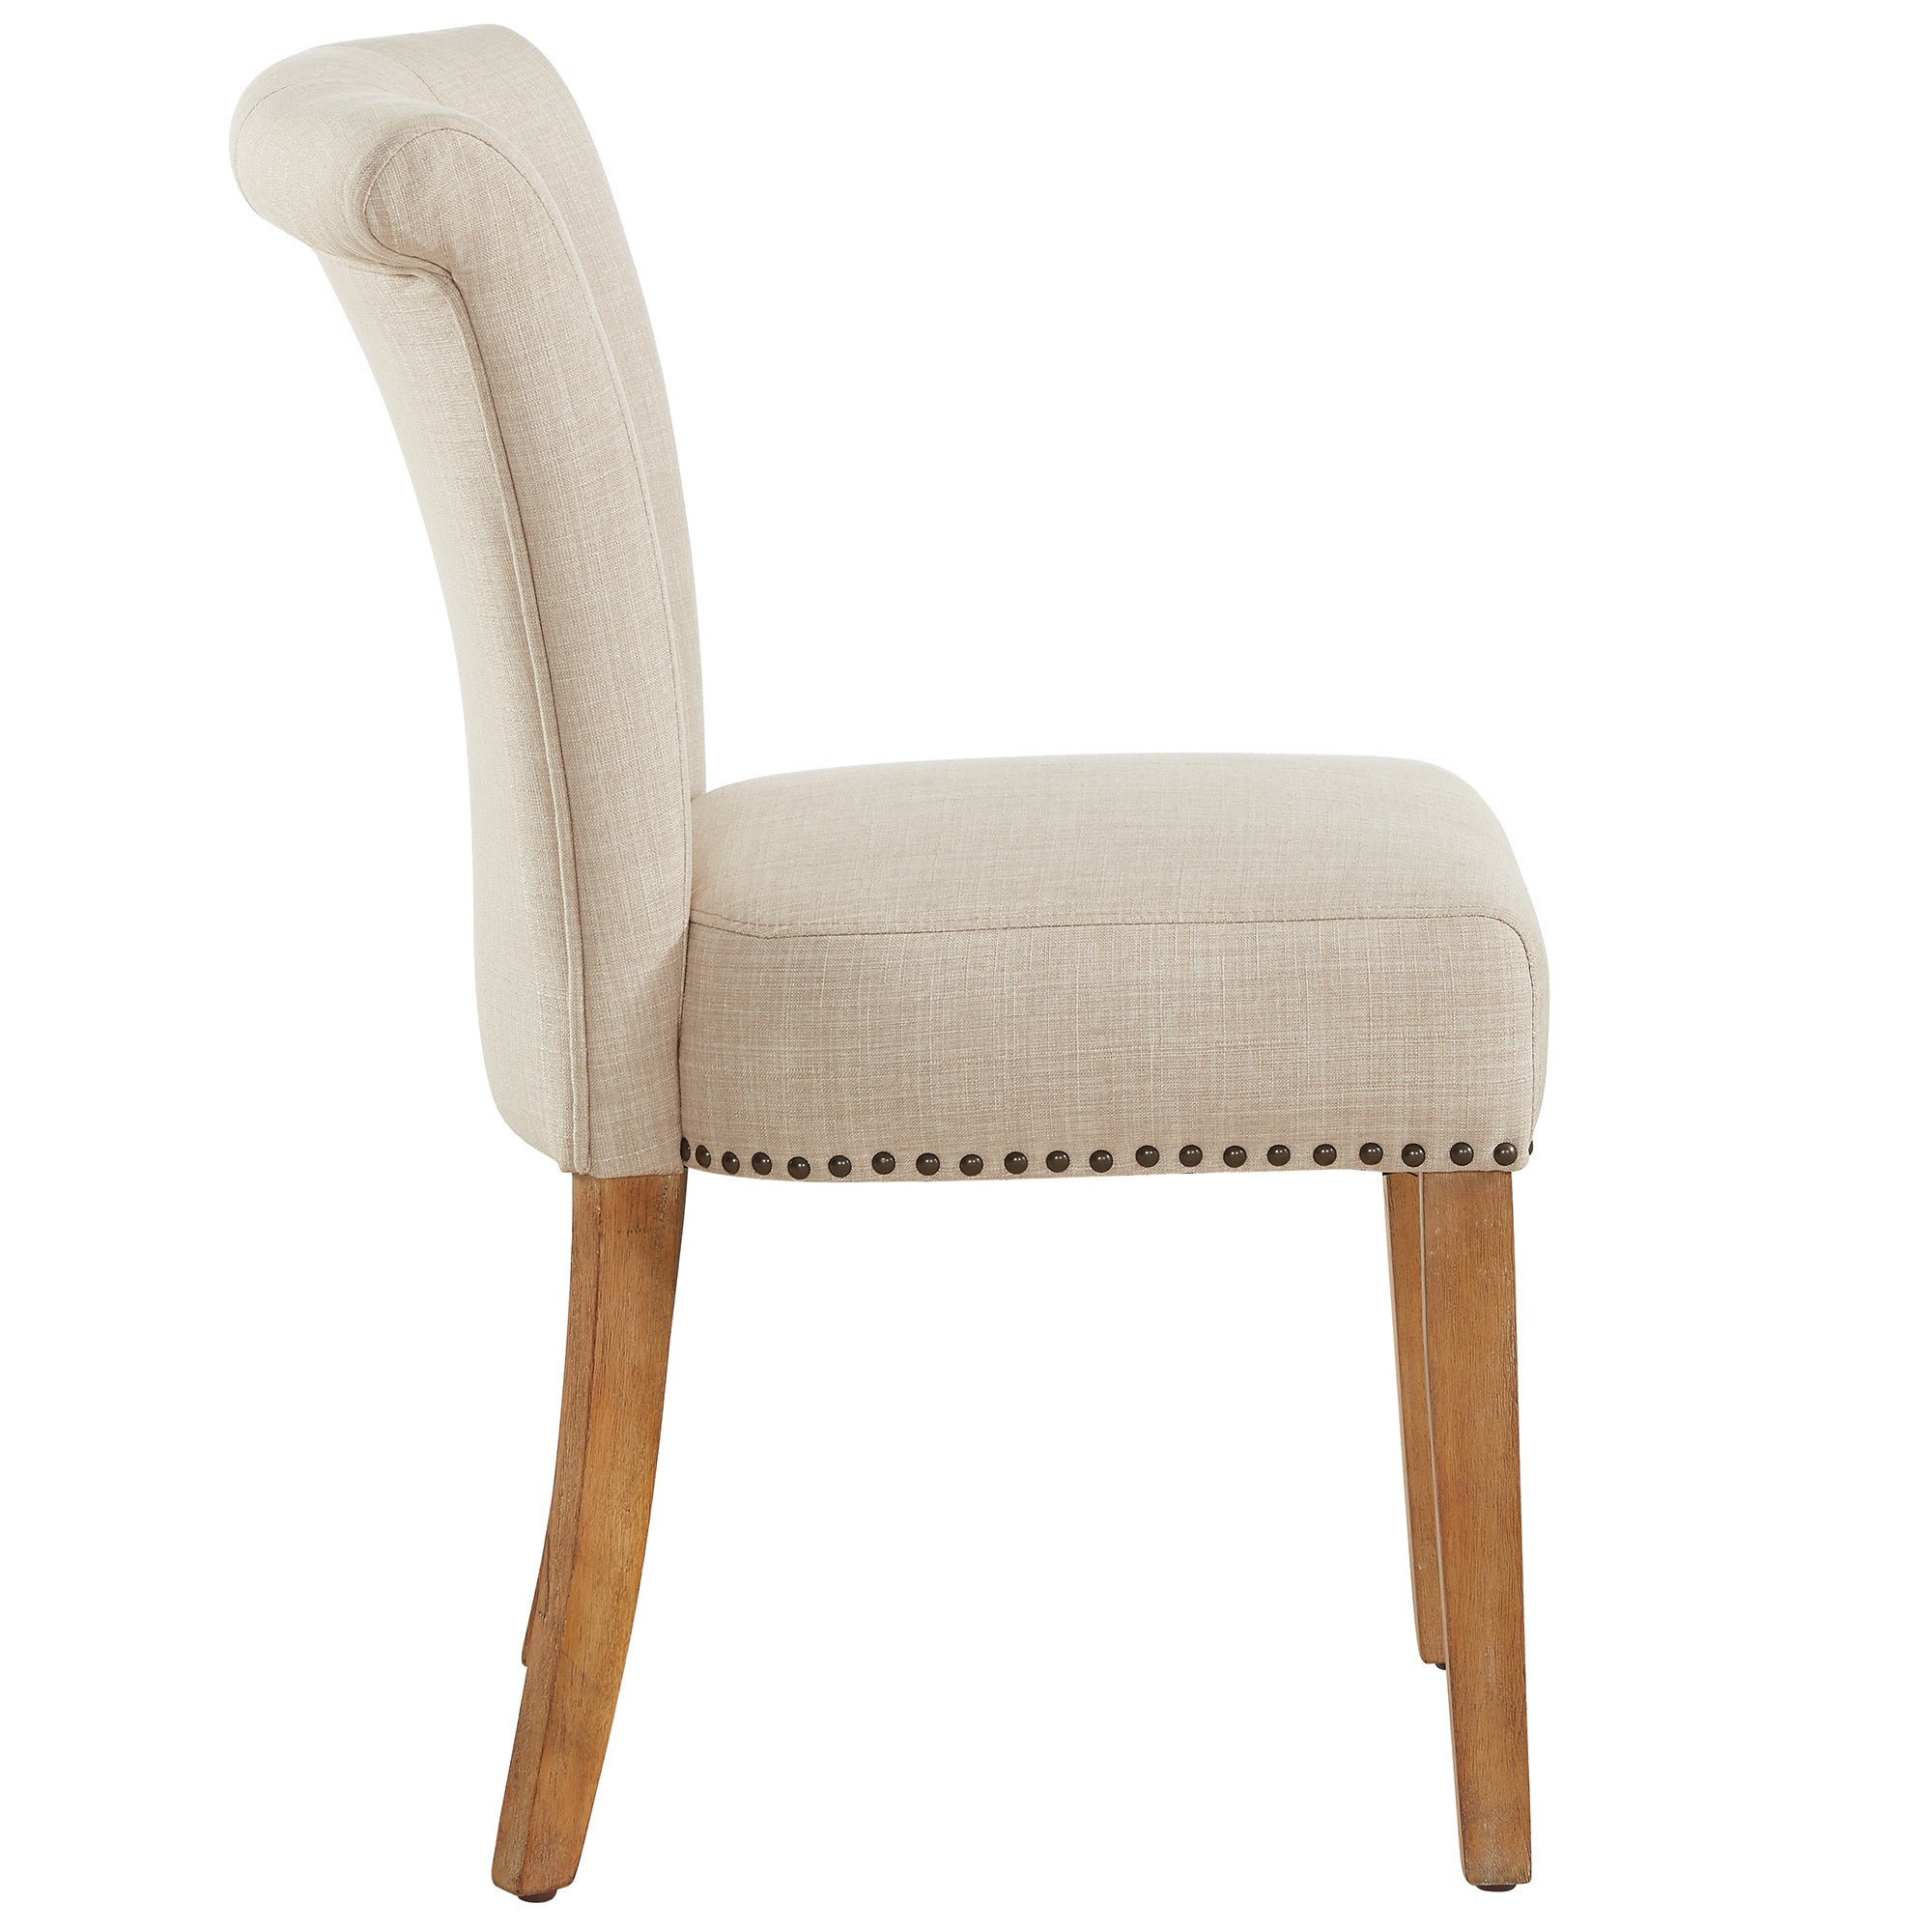 Shop selma beige fabric rubberwood button tufted side chair set of 2 free shipping today overstock com 16201089